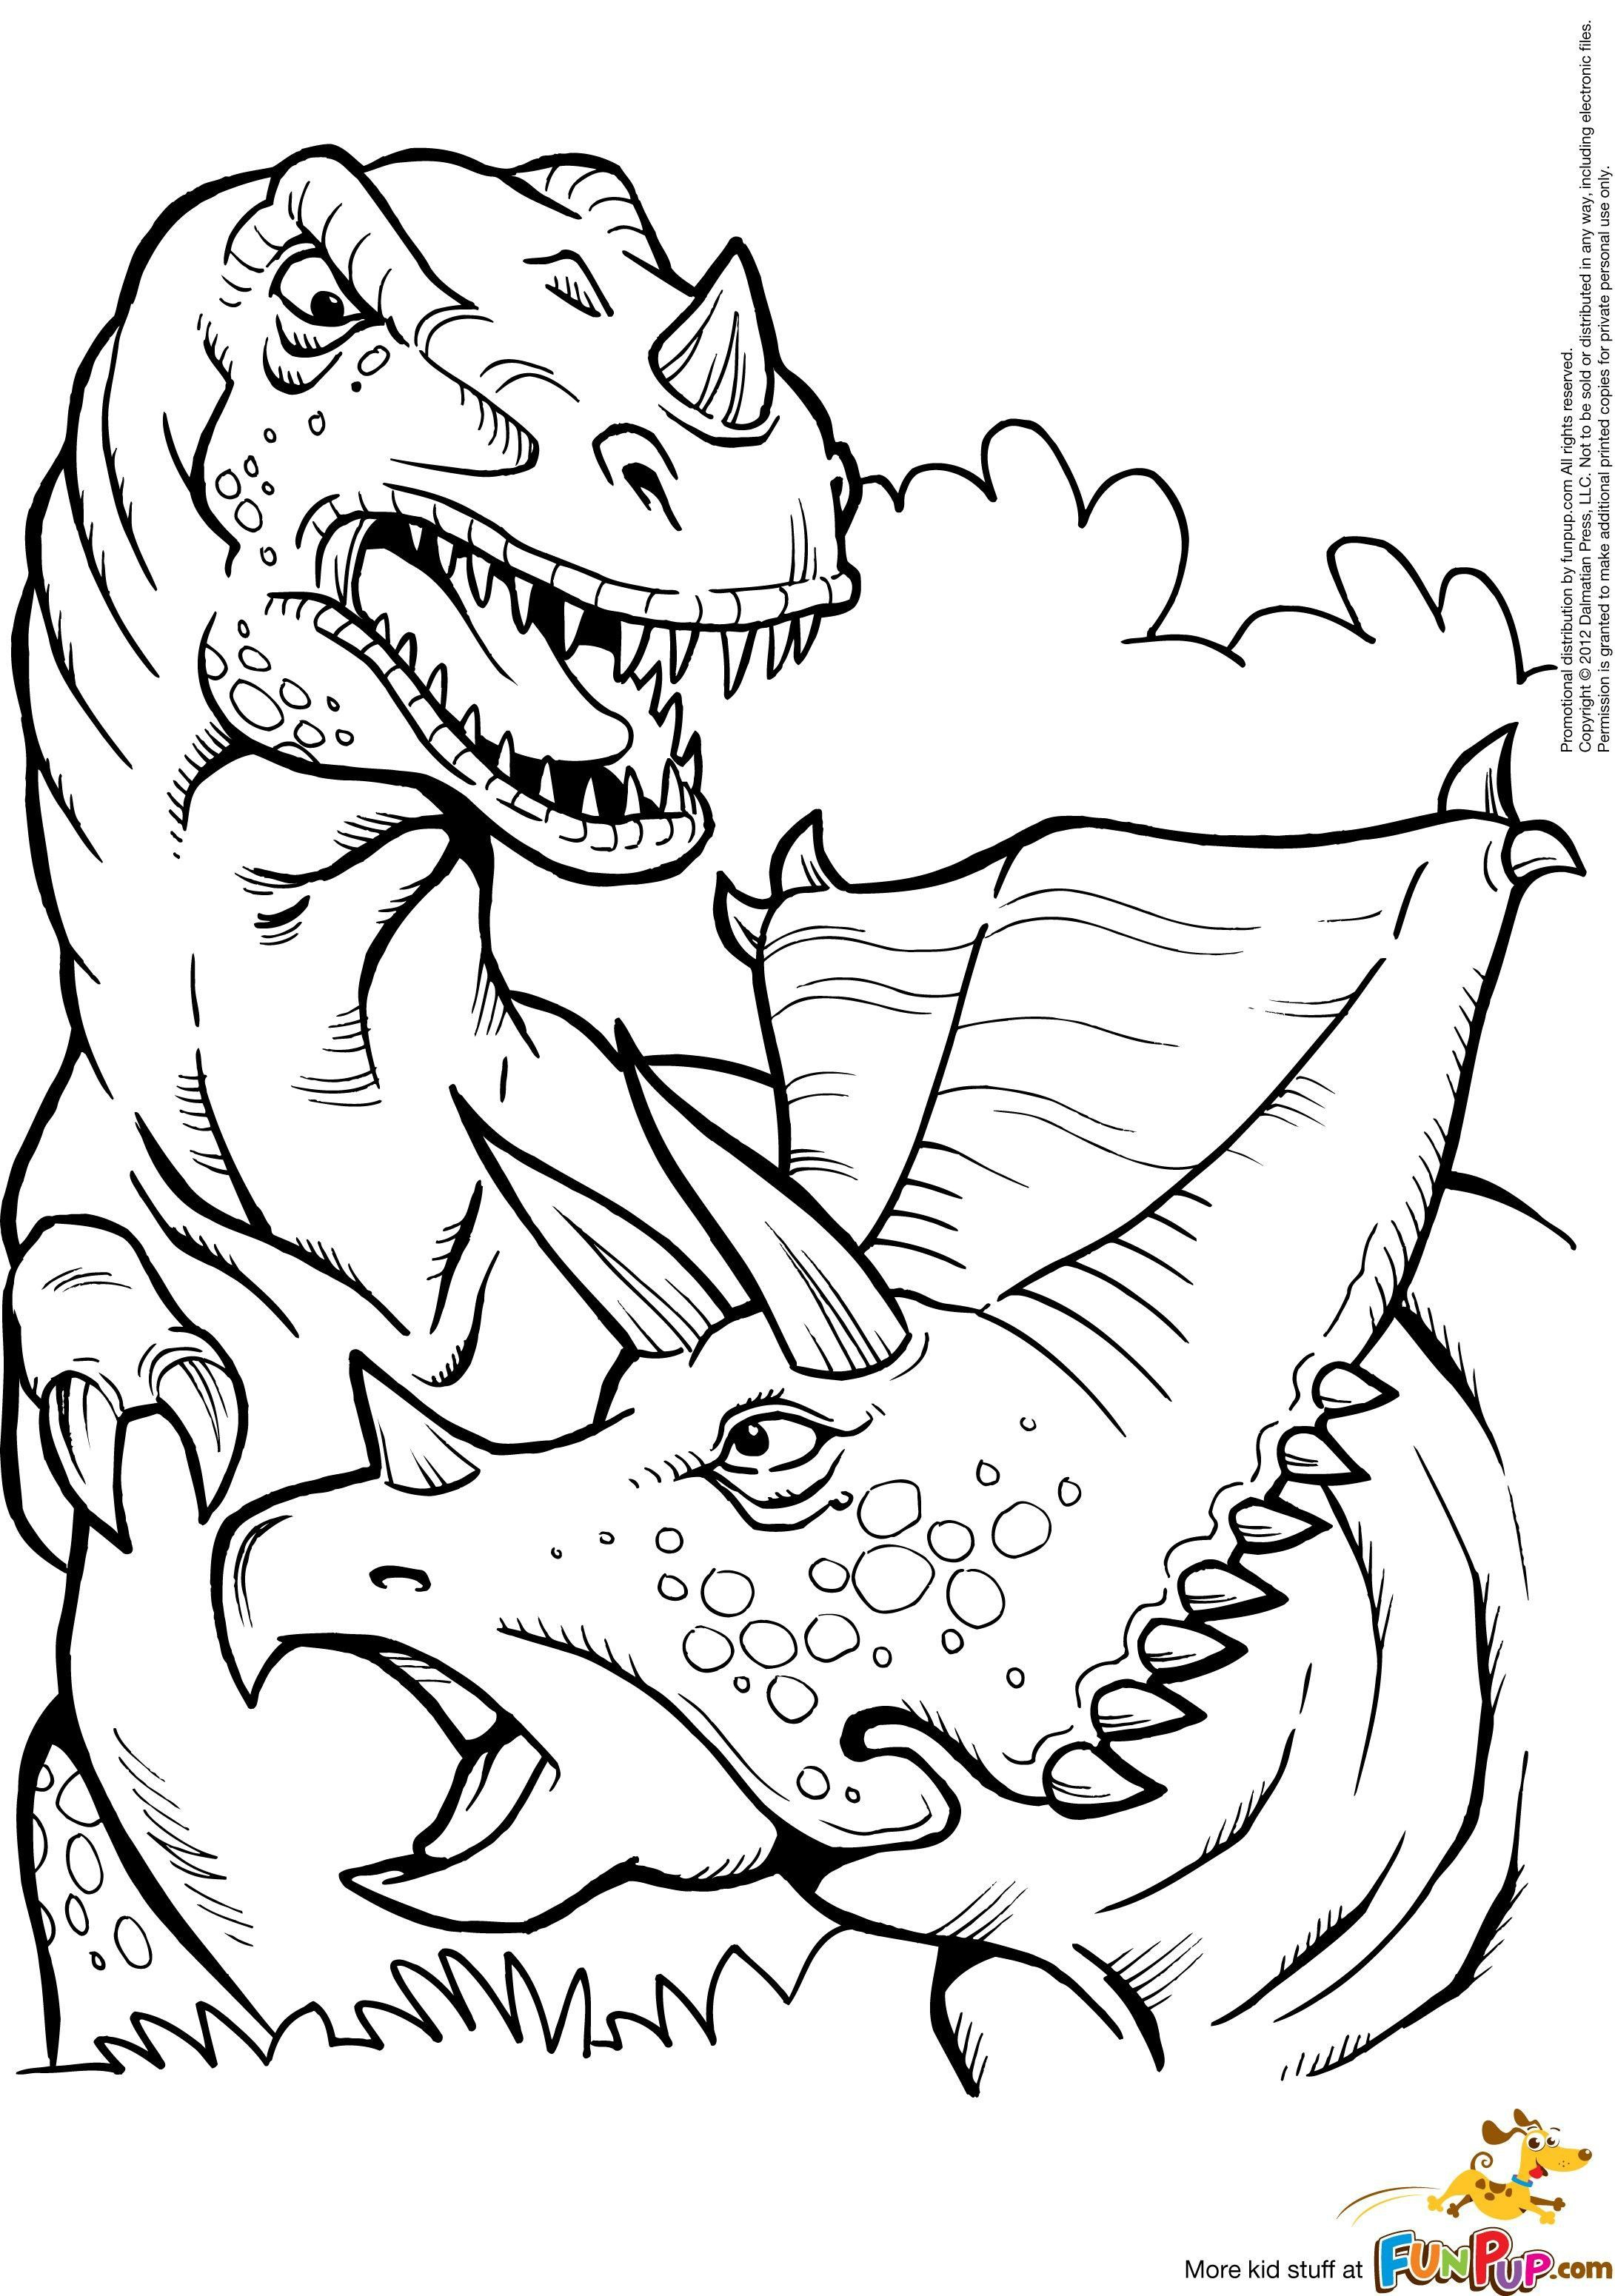 Walking with Dinosaurs Coloring Pages  Printable 8s - Free For kids